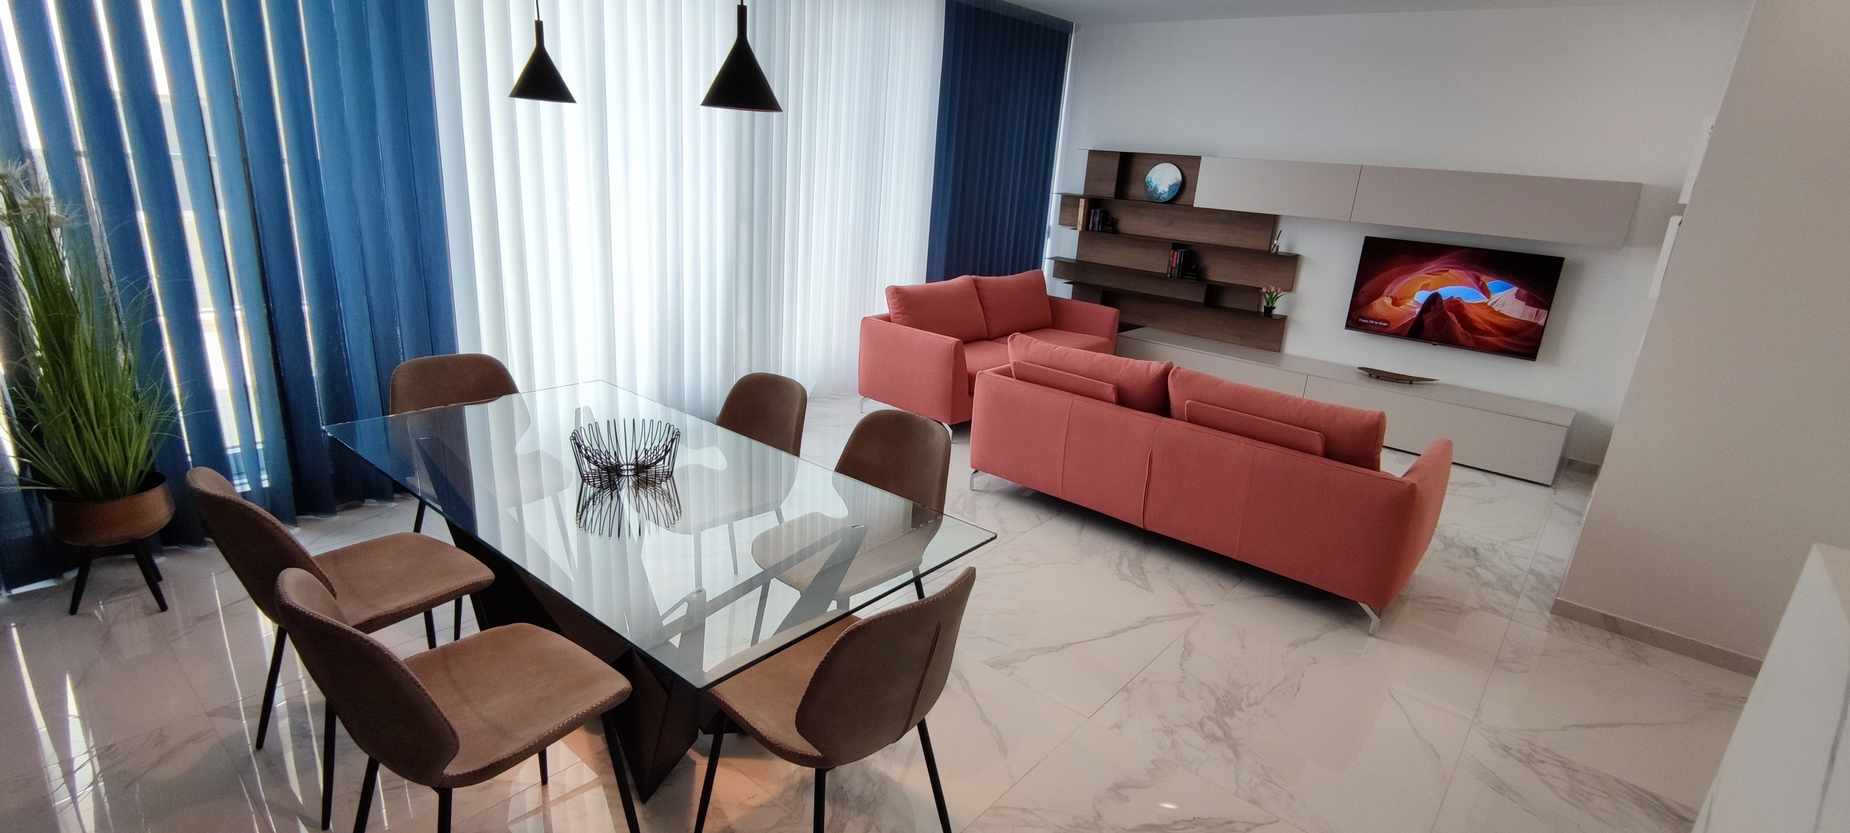 4 bed Penthouse For Rent in Sliema, Sliema - thumb 5